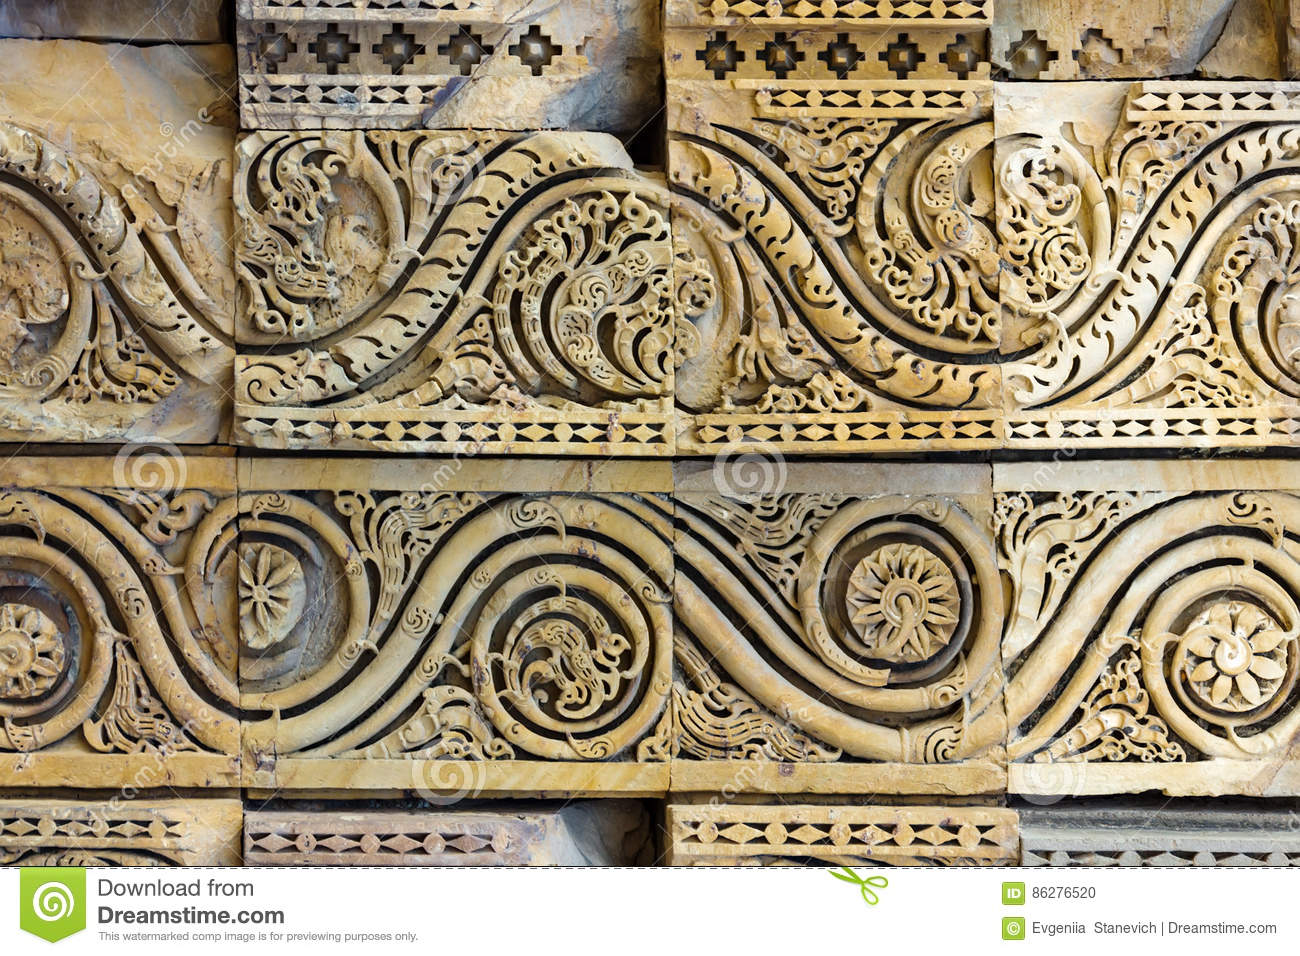 Ancient indian bas-relief